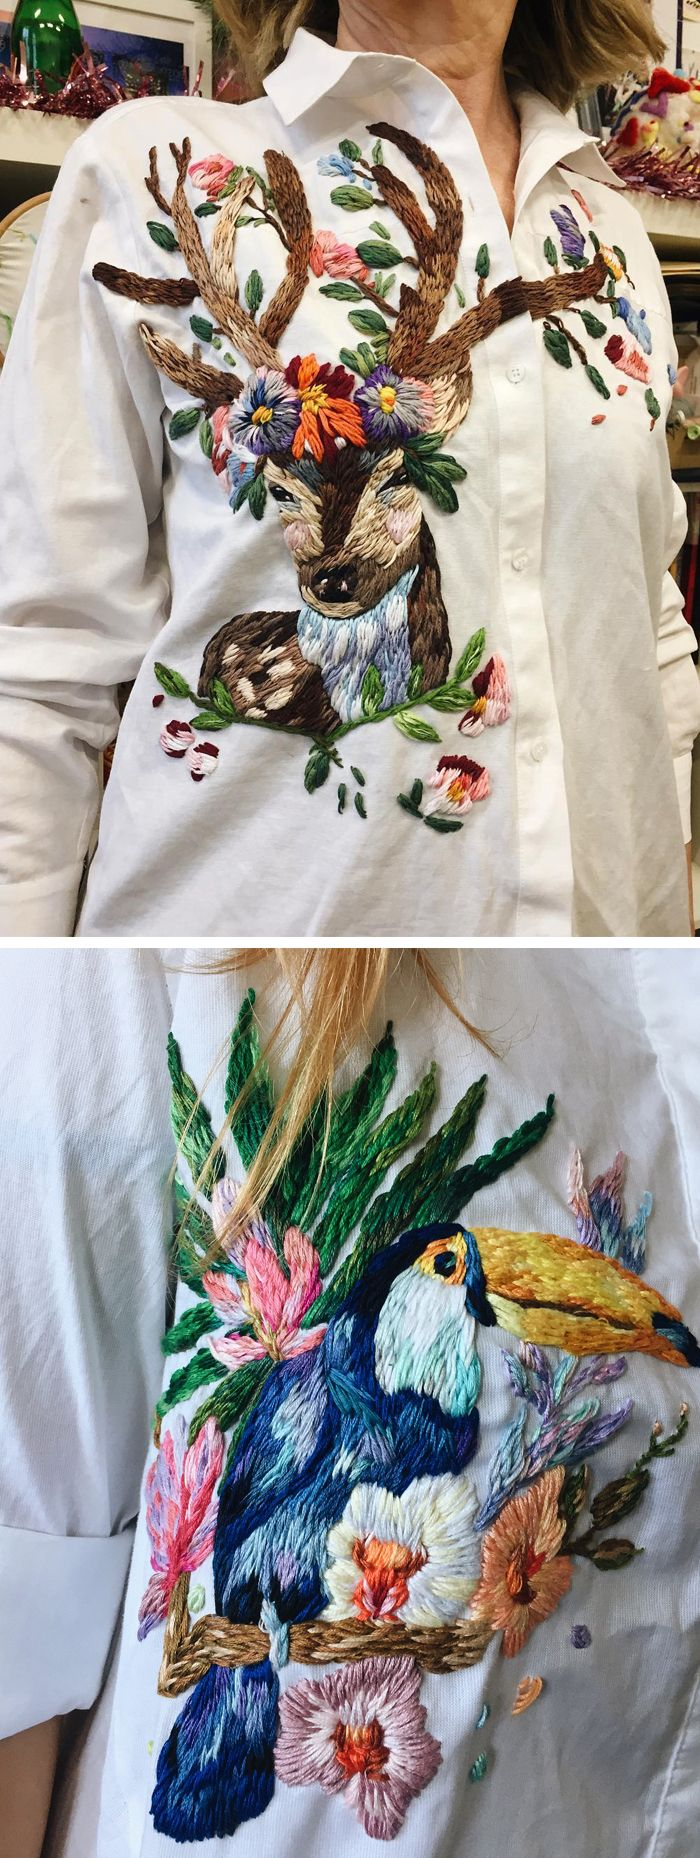 Custom embroidered clothing by Lisa Smirova